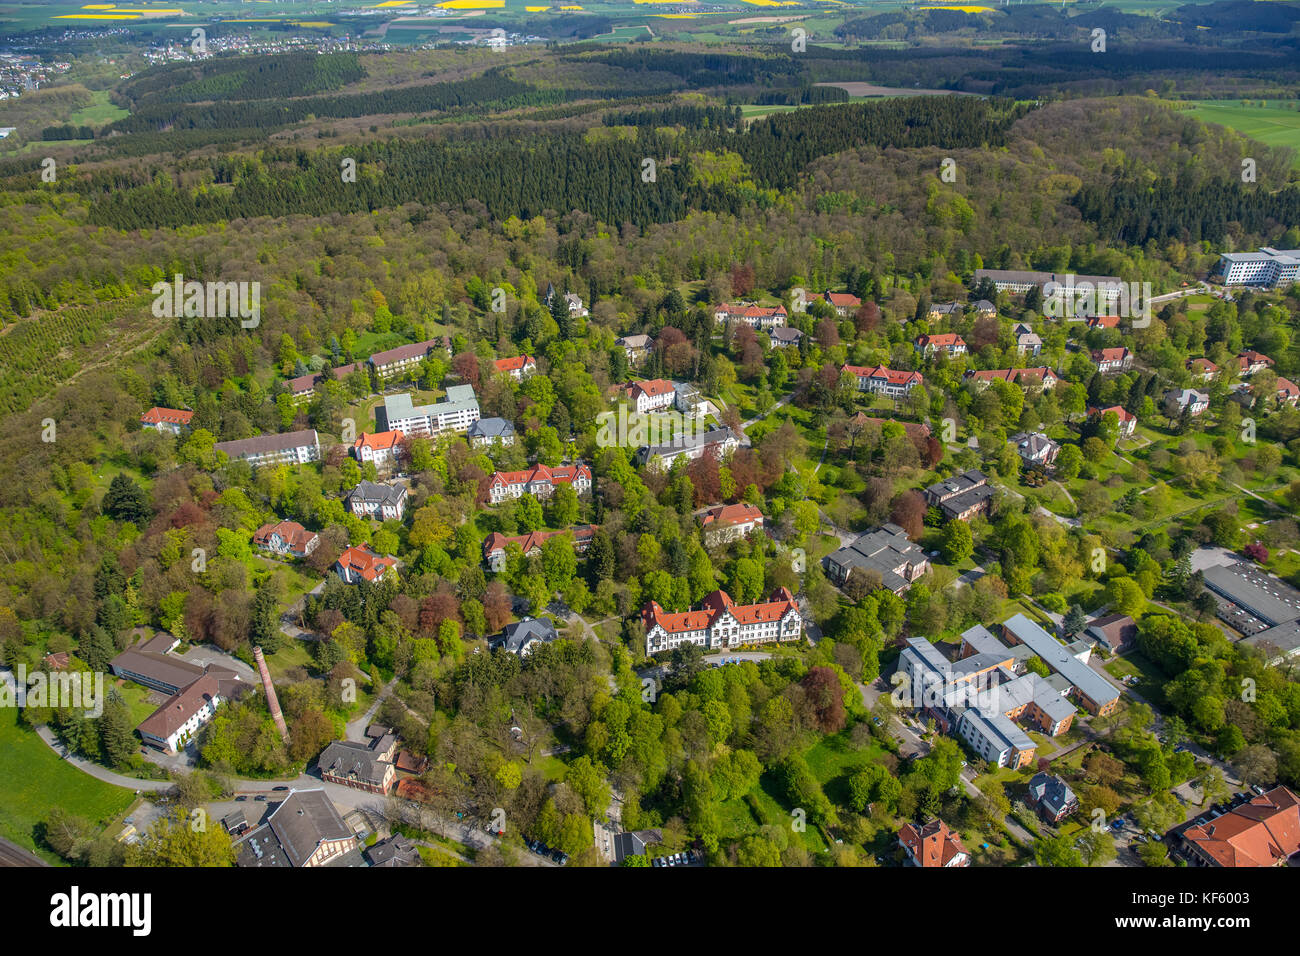 LWL Clinic, Warstein, Sauerland, North Rhine-Westphalia, Germany, Europe, Aerial View, Aerial, aerial photography, - Stock Image